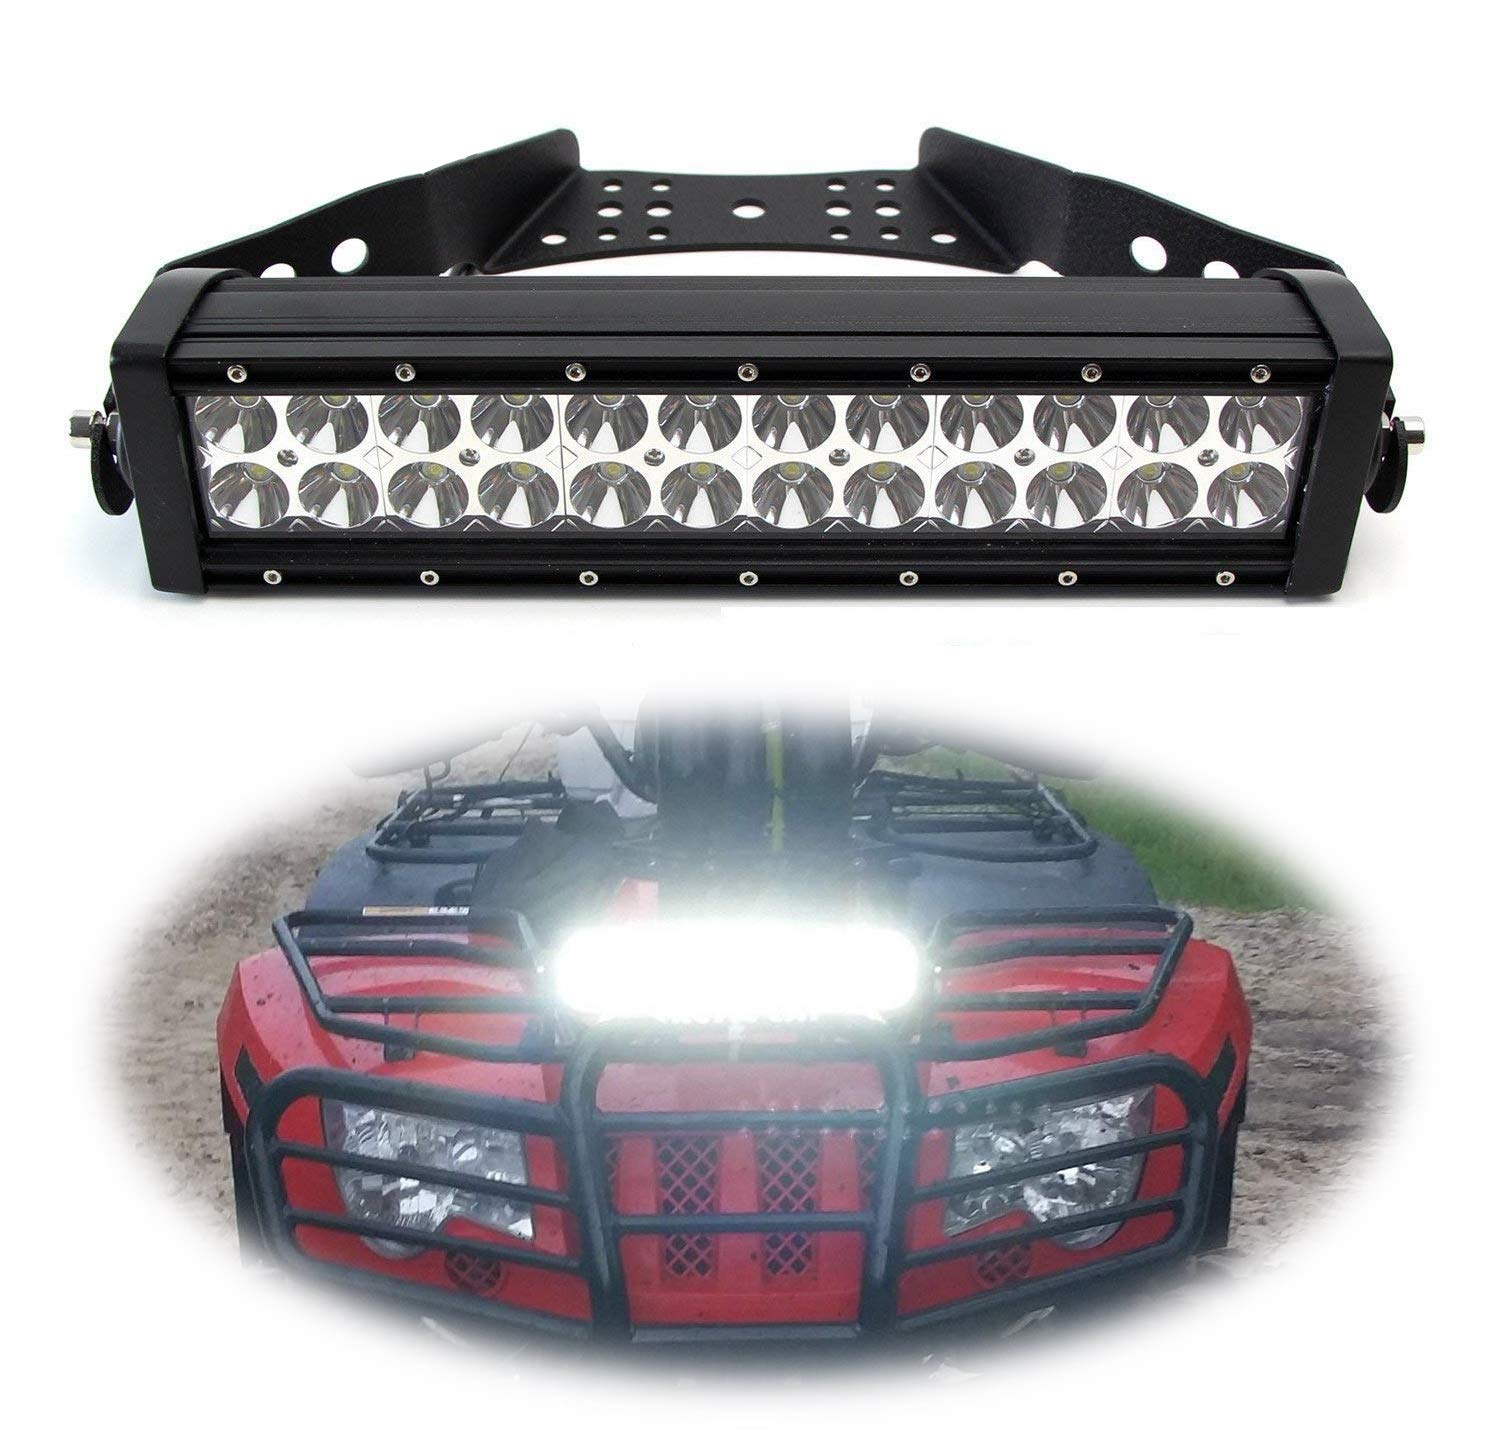 iJDMTOY 14-Inch LED Light Bar Kit Universal Fit For ATV UTV Handles, Grill & Hood, Includes 72W High Power Double Row LED Light Bar, Handlebar/Front Grille/Hood Mount Bracket & On/Off Switch Wirings by iJDMTOY